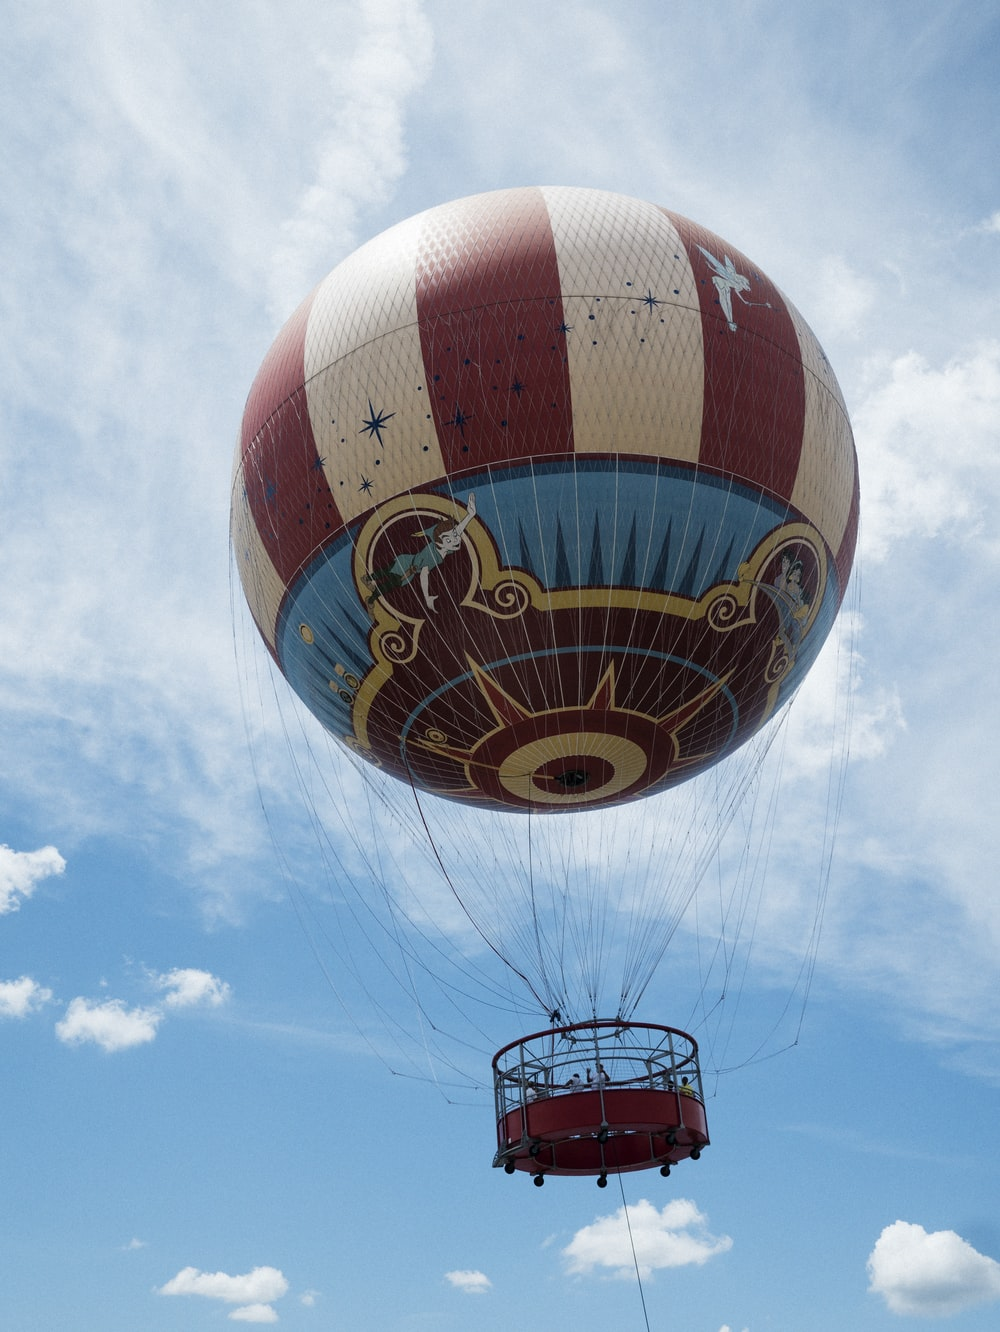 brown and beige hot air ballooning during daytime